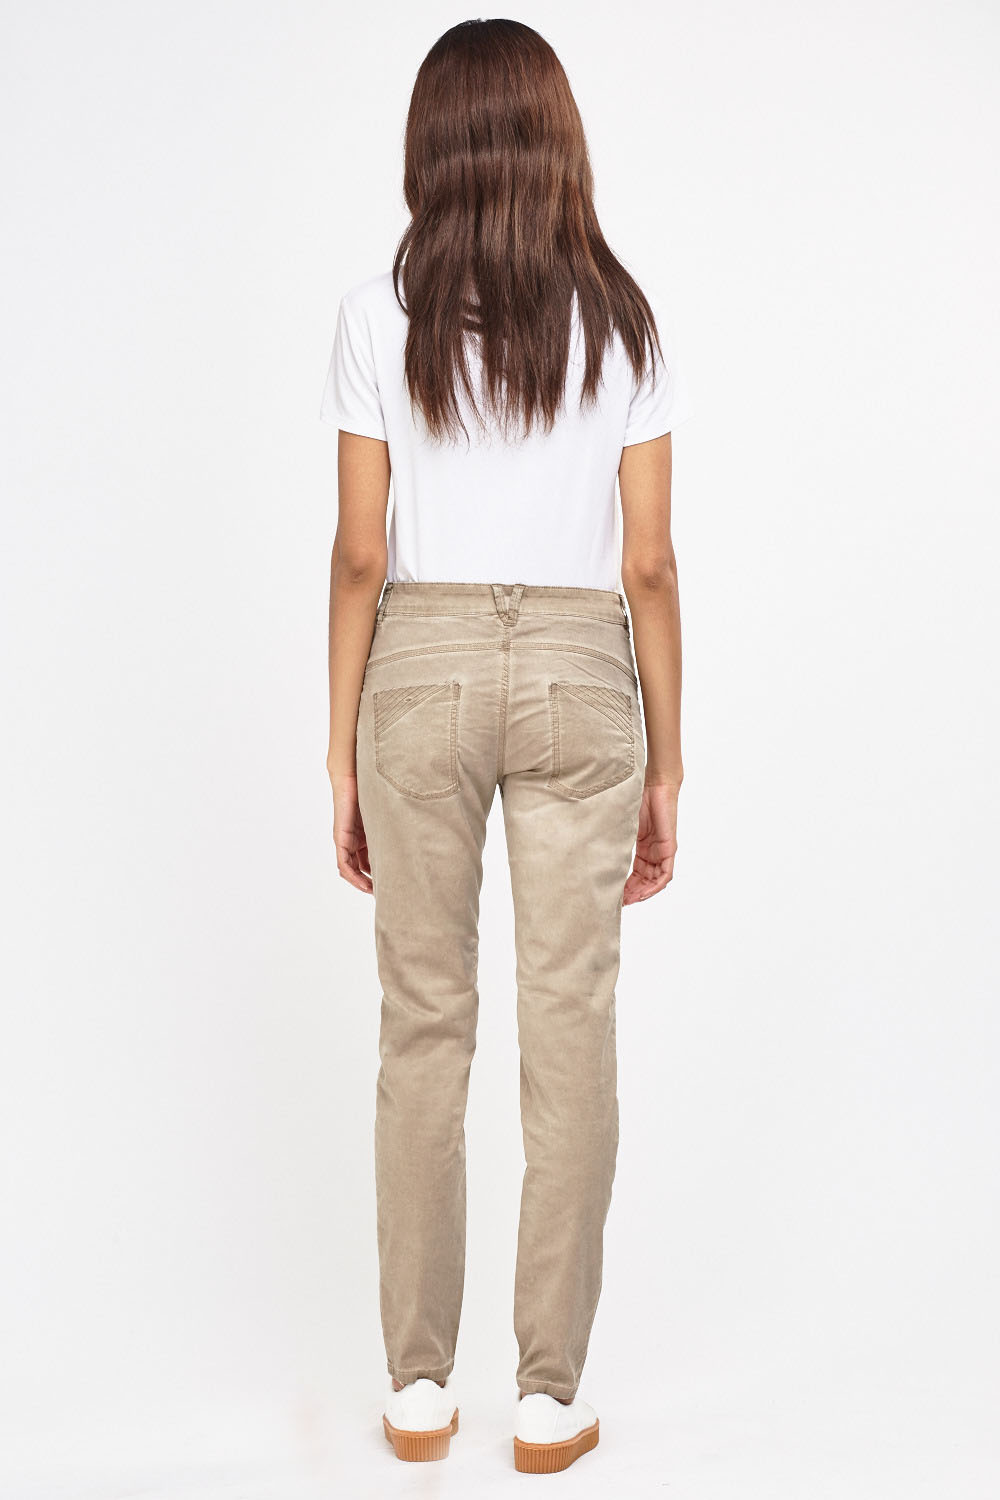 Washed Out Faded Light Trousers Beige Or Sand Just 163 5